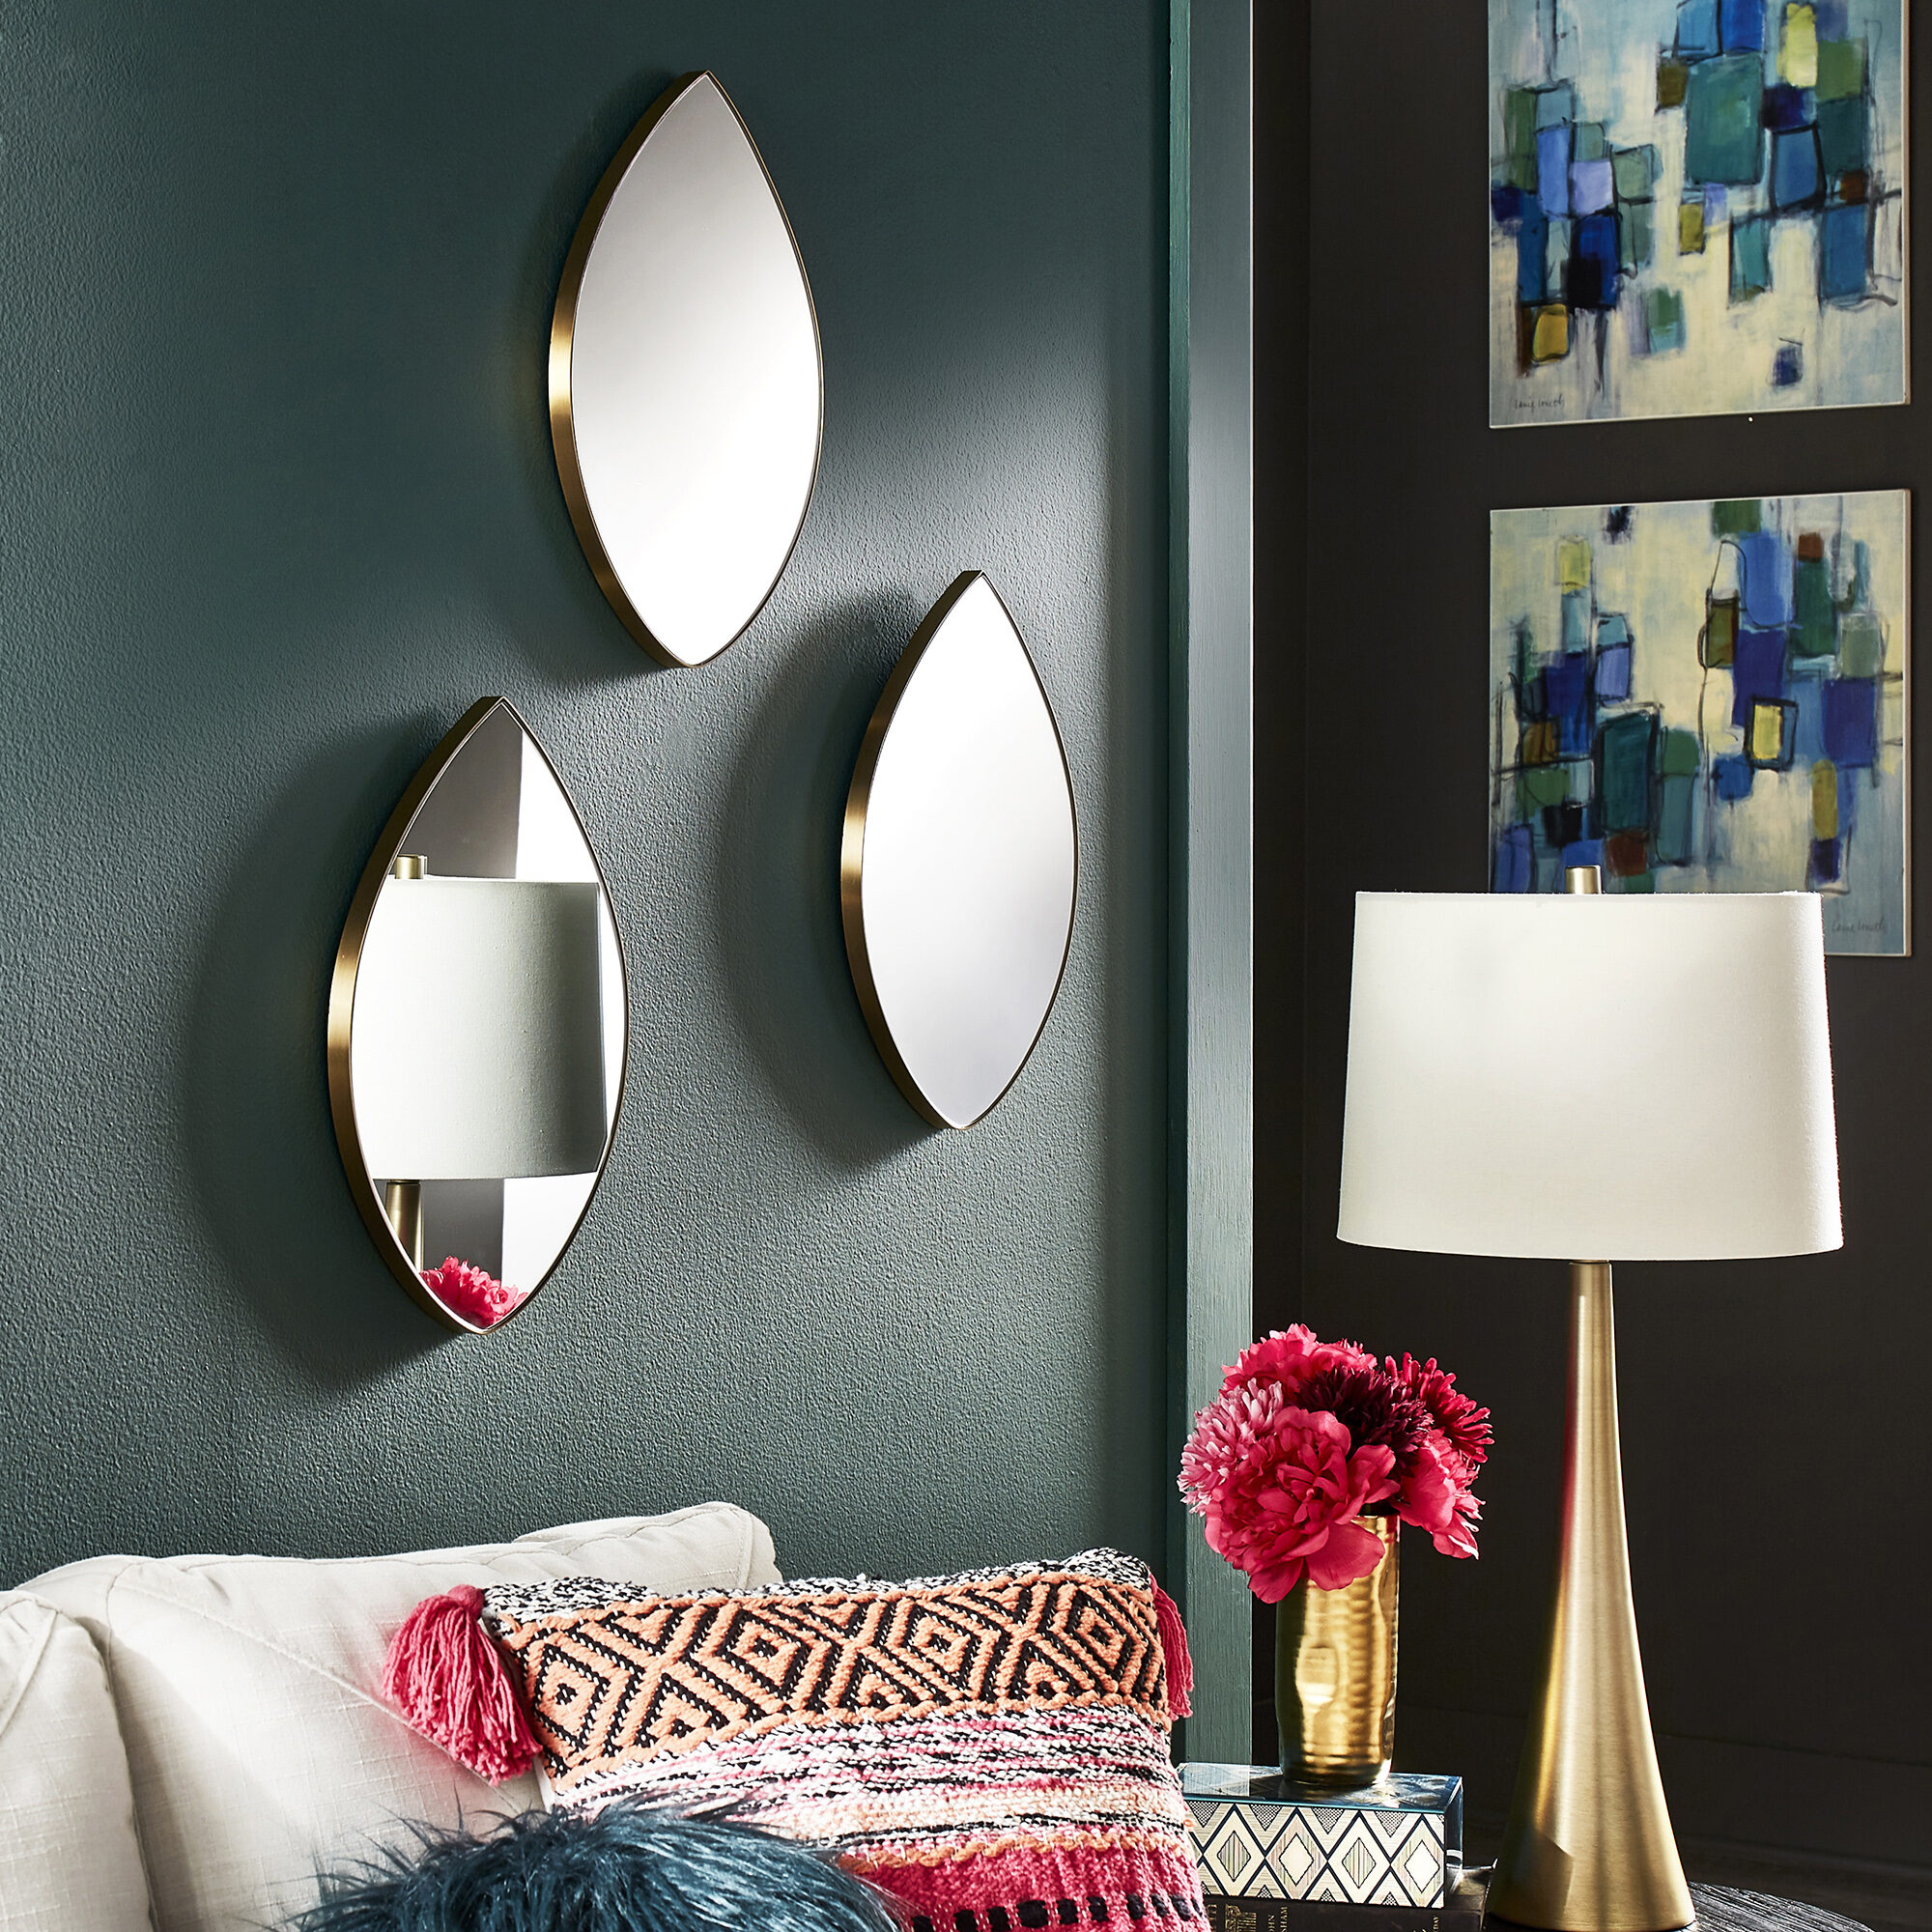 This image shows one mirror decorating idea. Three teardrop-shaped mirrors are styled on a wall behind a sofa and a table lamp to cast more light in the room.